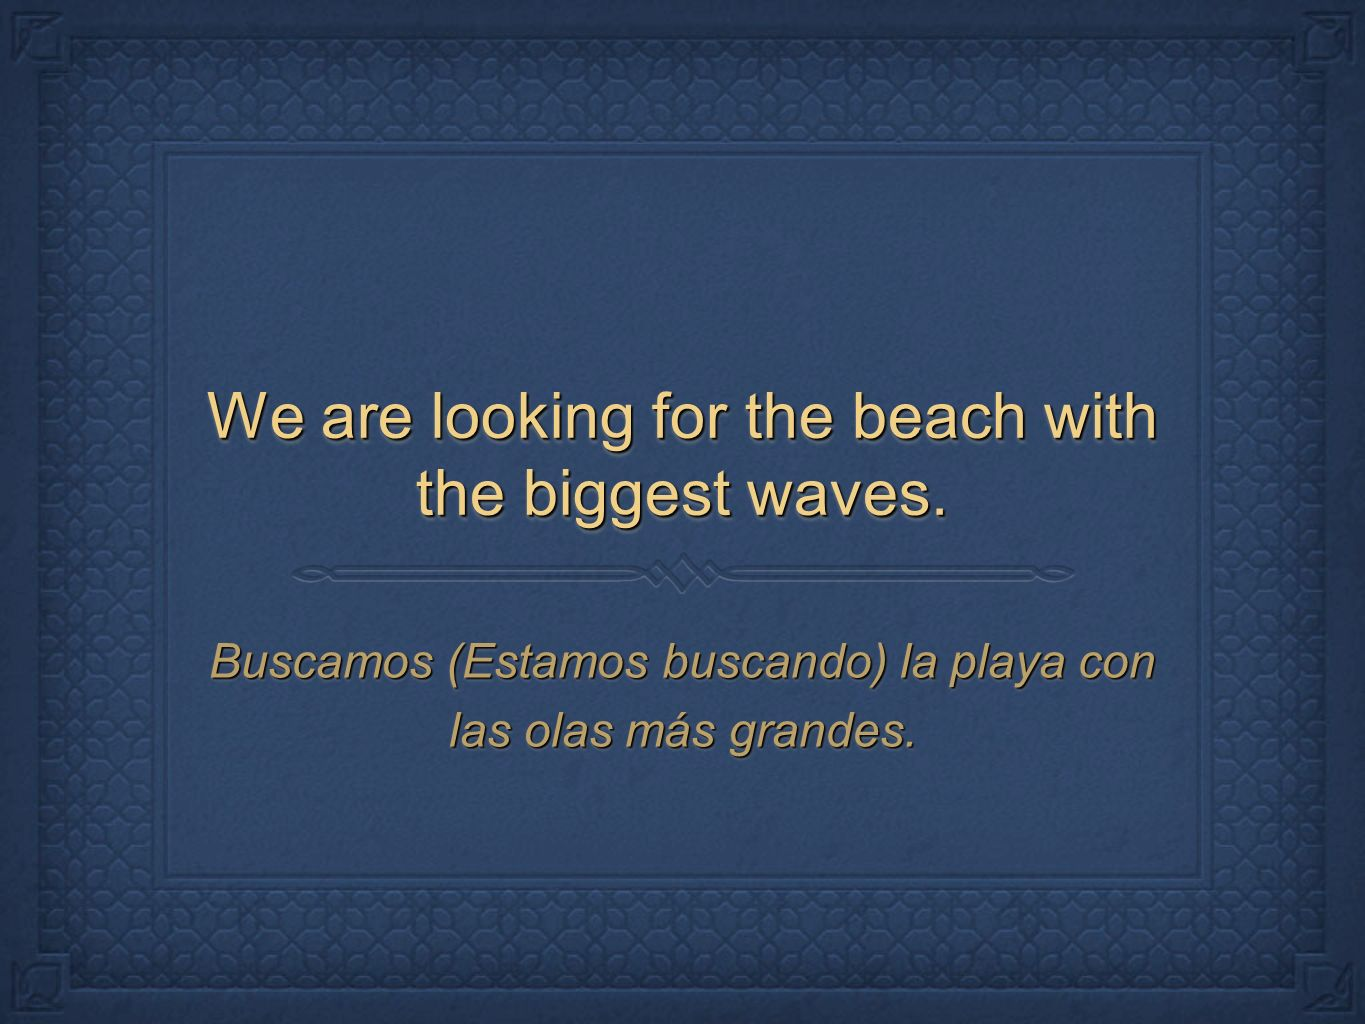 We are looking for the beach with the biggest waves.